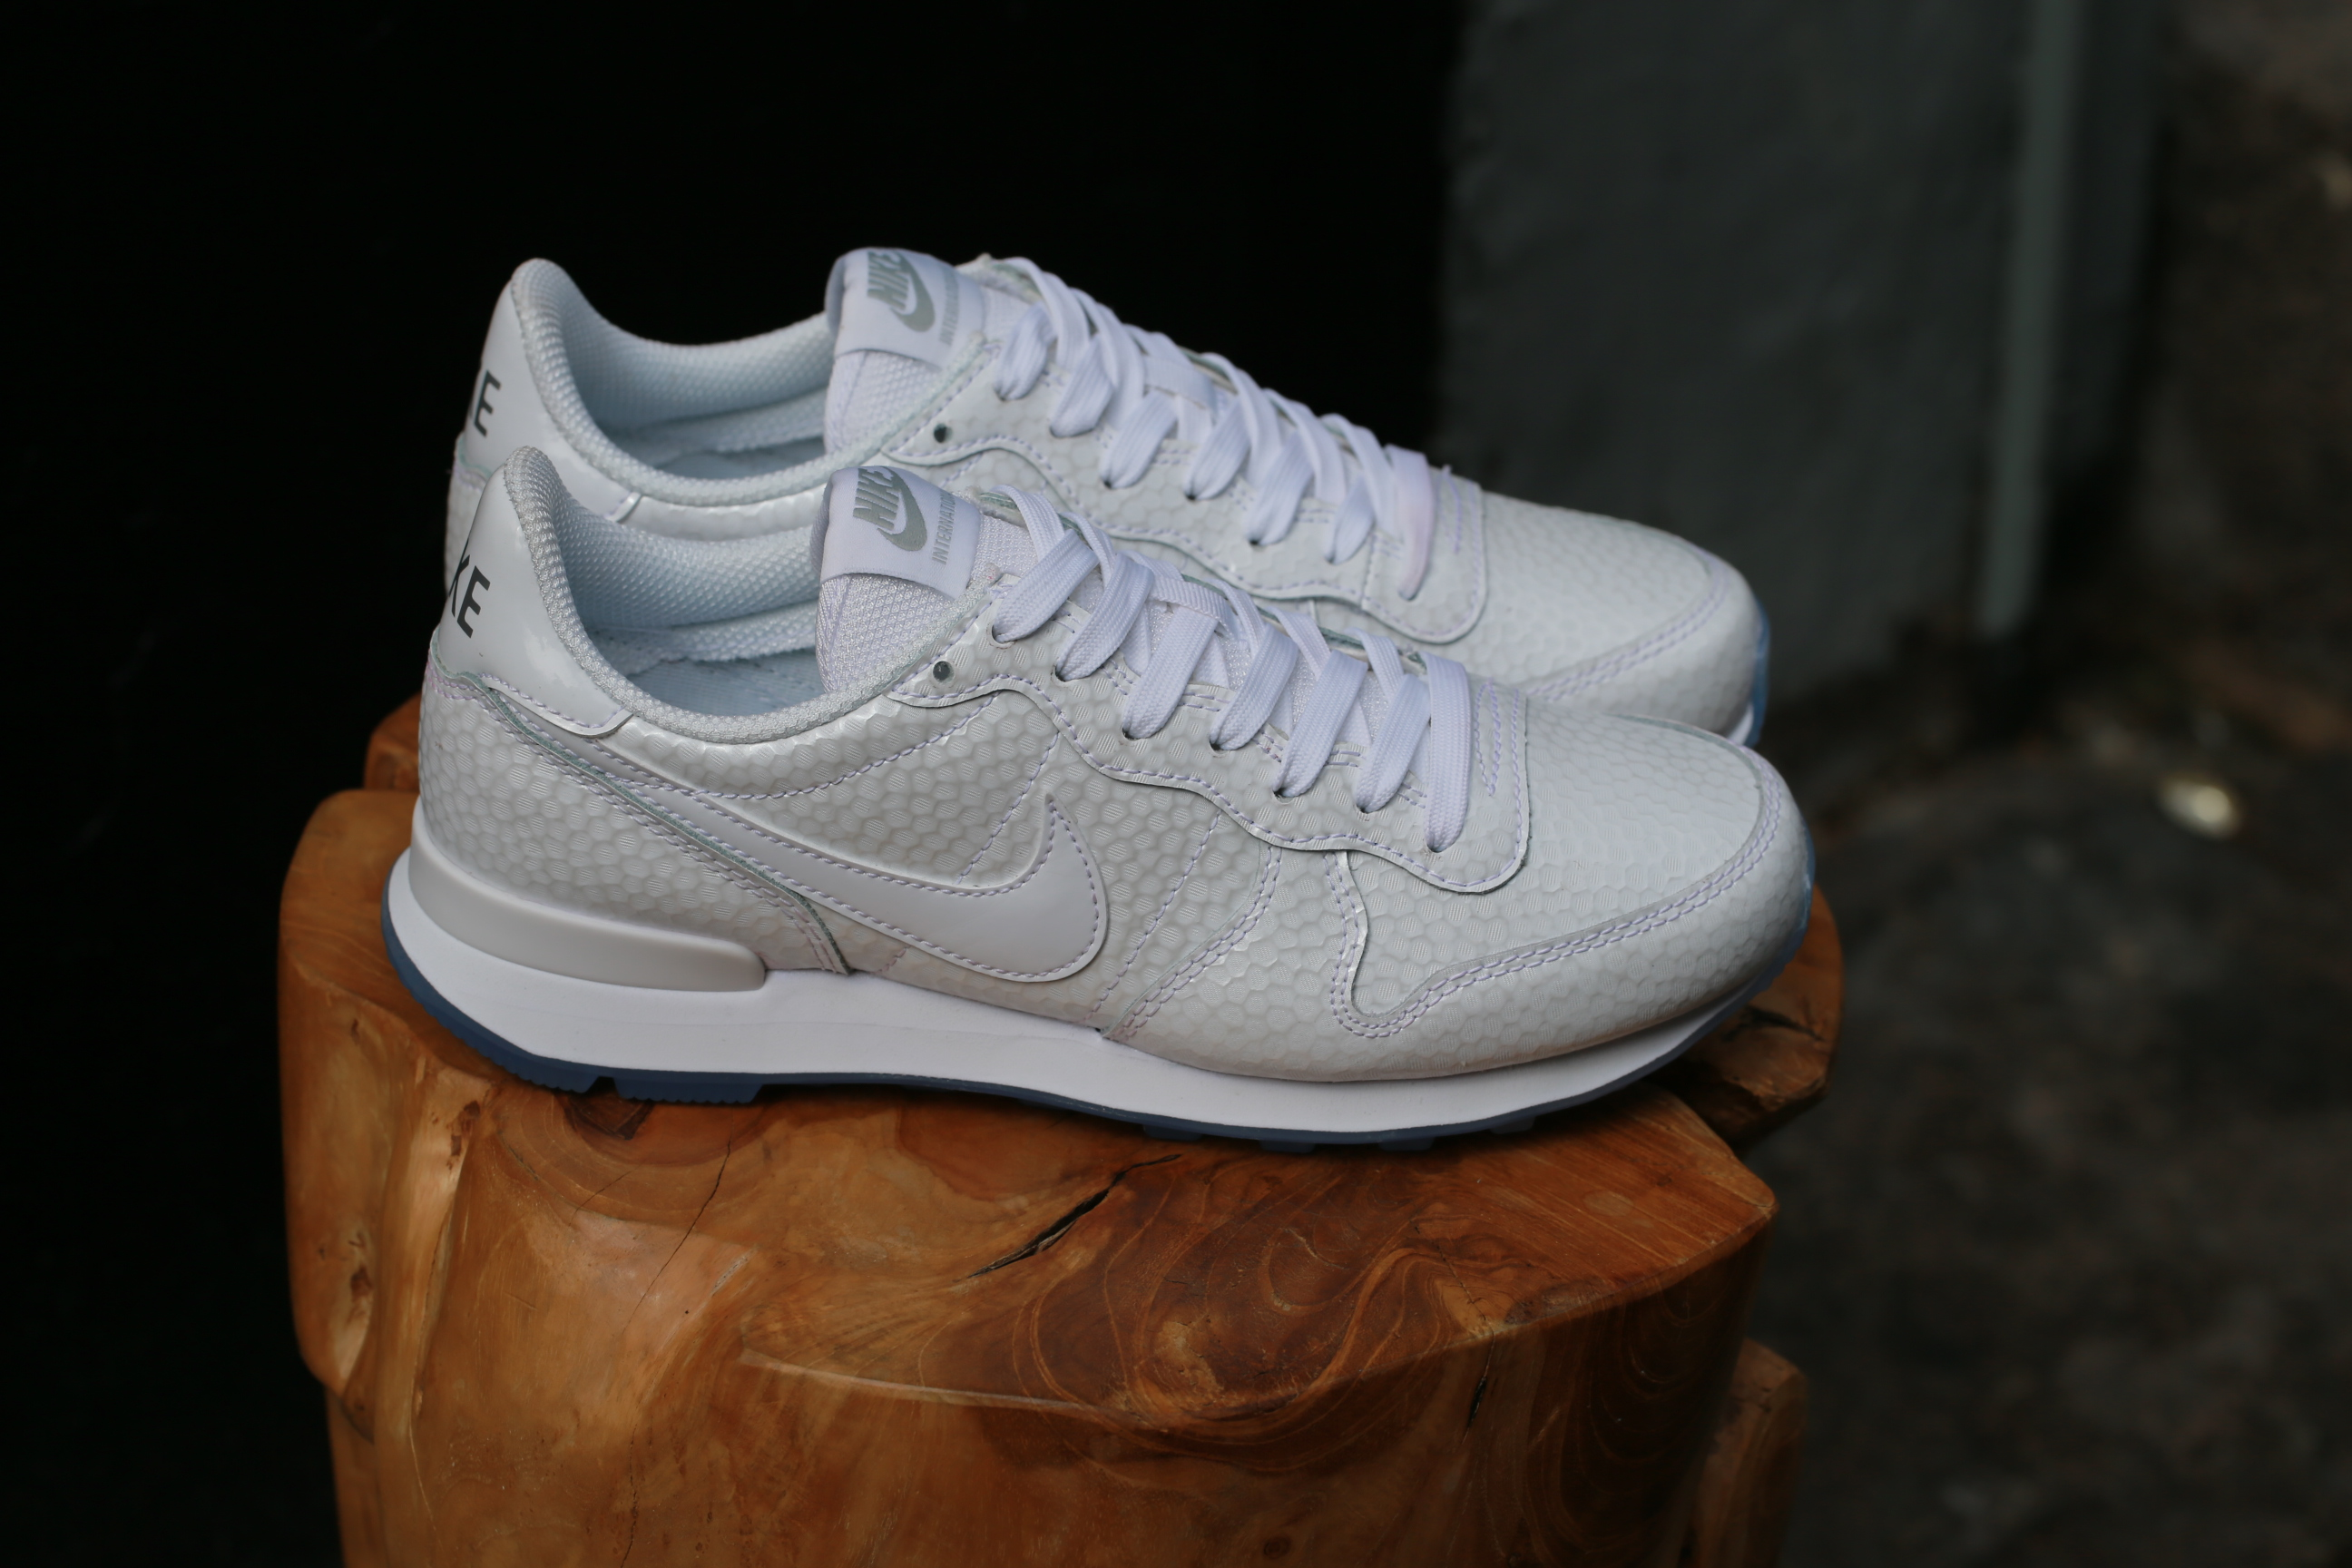 new arrival 70d73 2e5d0 ... Free Shipping starts at 75€ - thegoodwillout ... nike internationalist  premium sneaker white metallic silver .